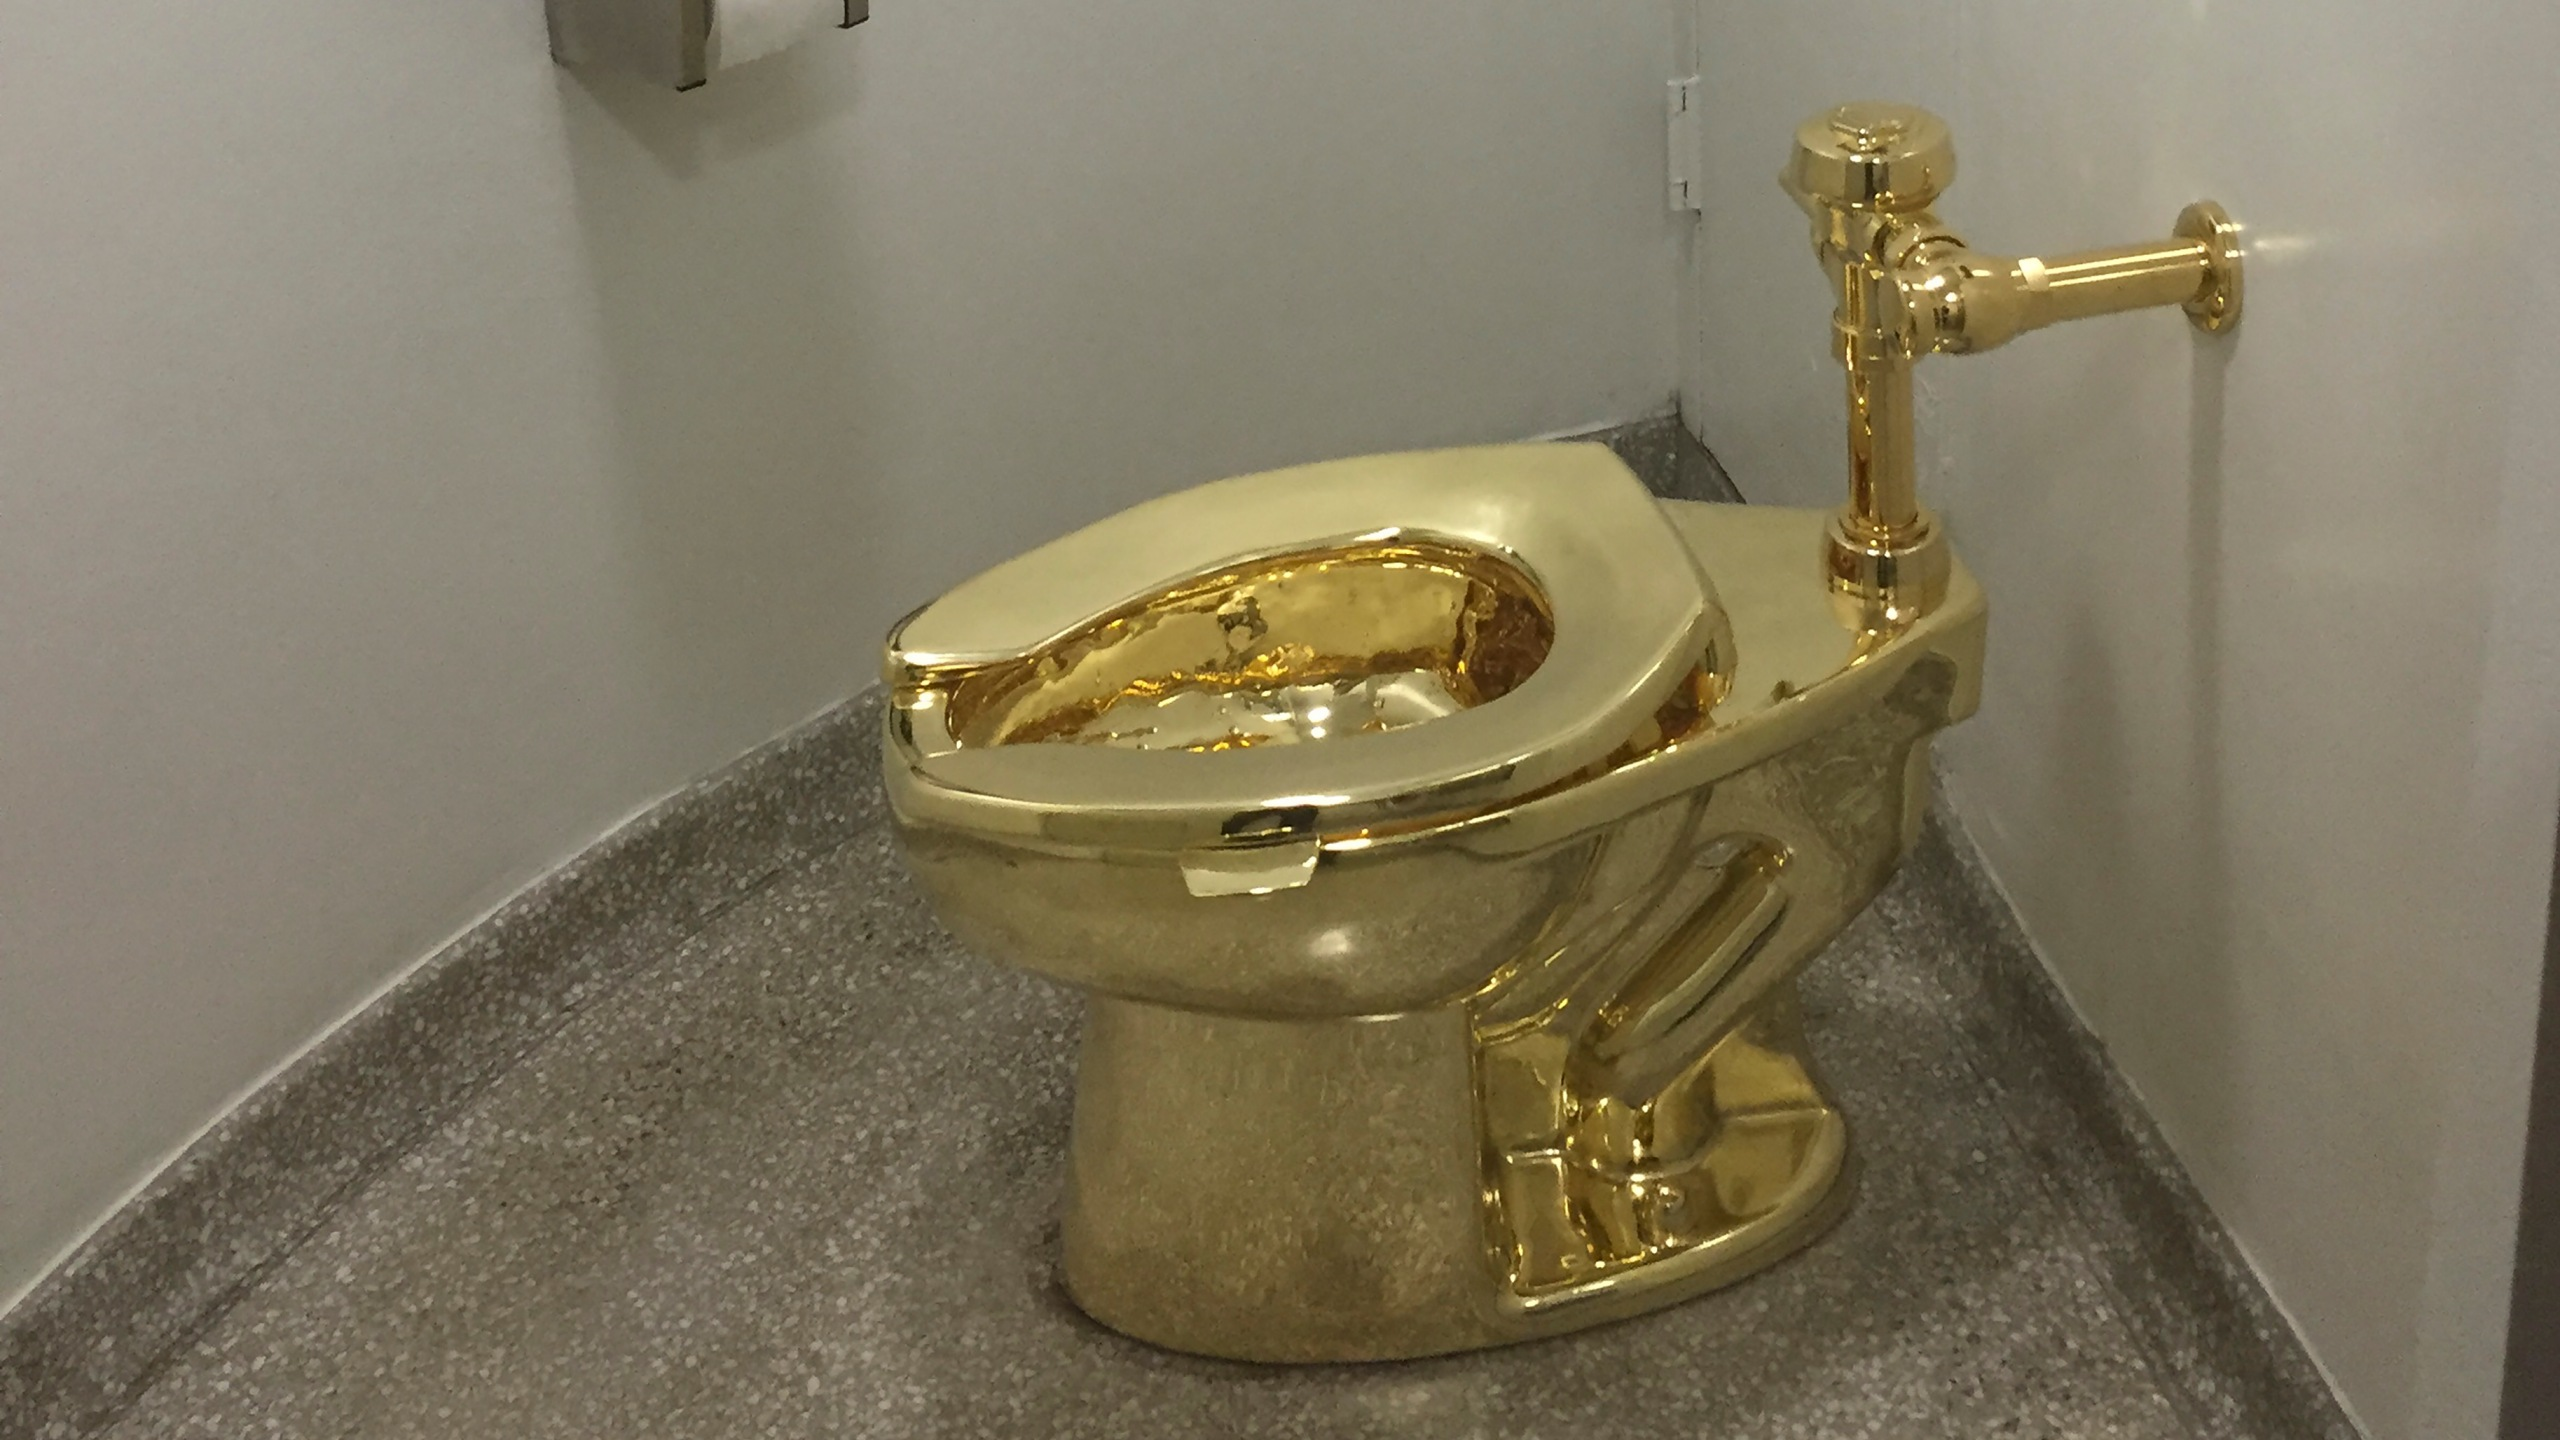 A fully functioning solid gold toilet, made by Italian artist Maurizio Cattelan, went into public use at the Guggenheim Museum in New York on Sept. 15, 2016. (Credit: William Edwards / AFP / Getty Images)